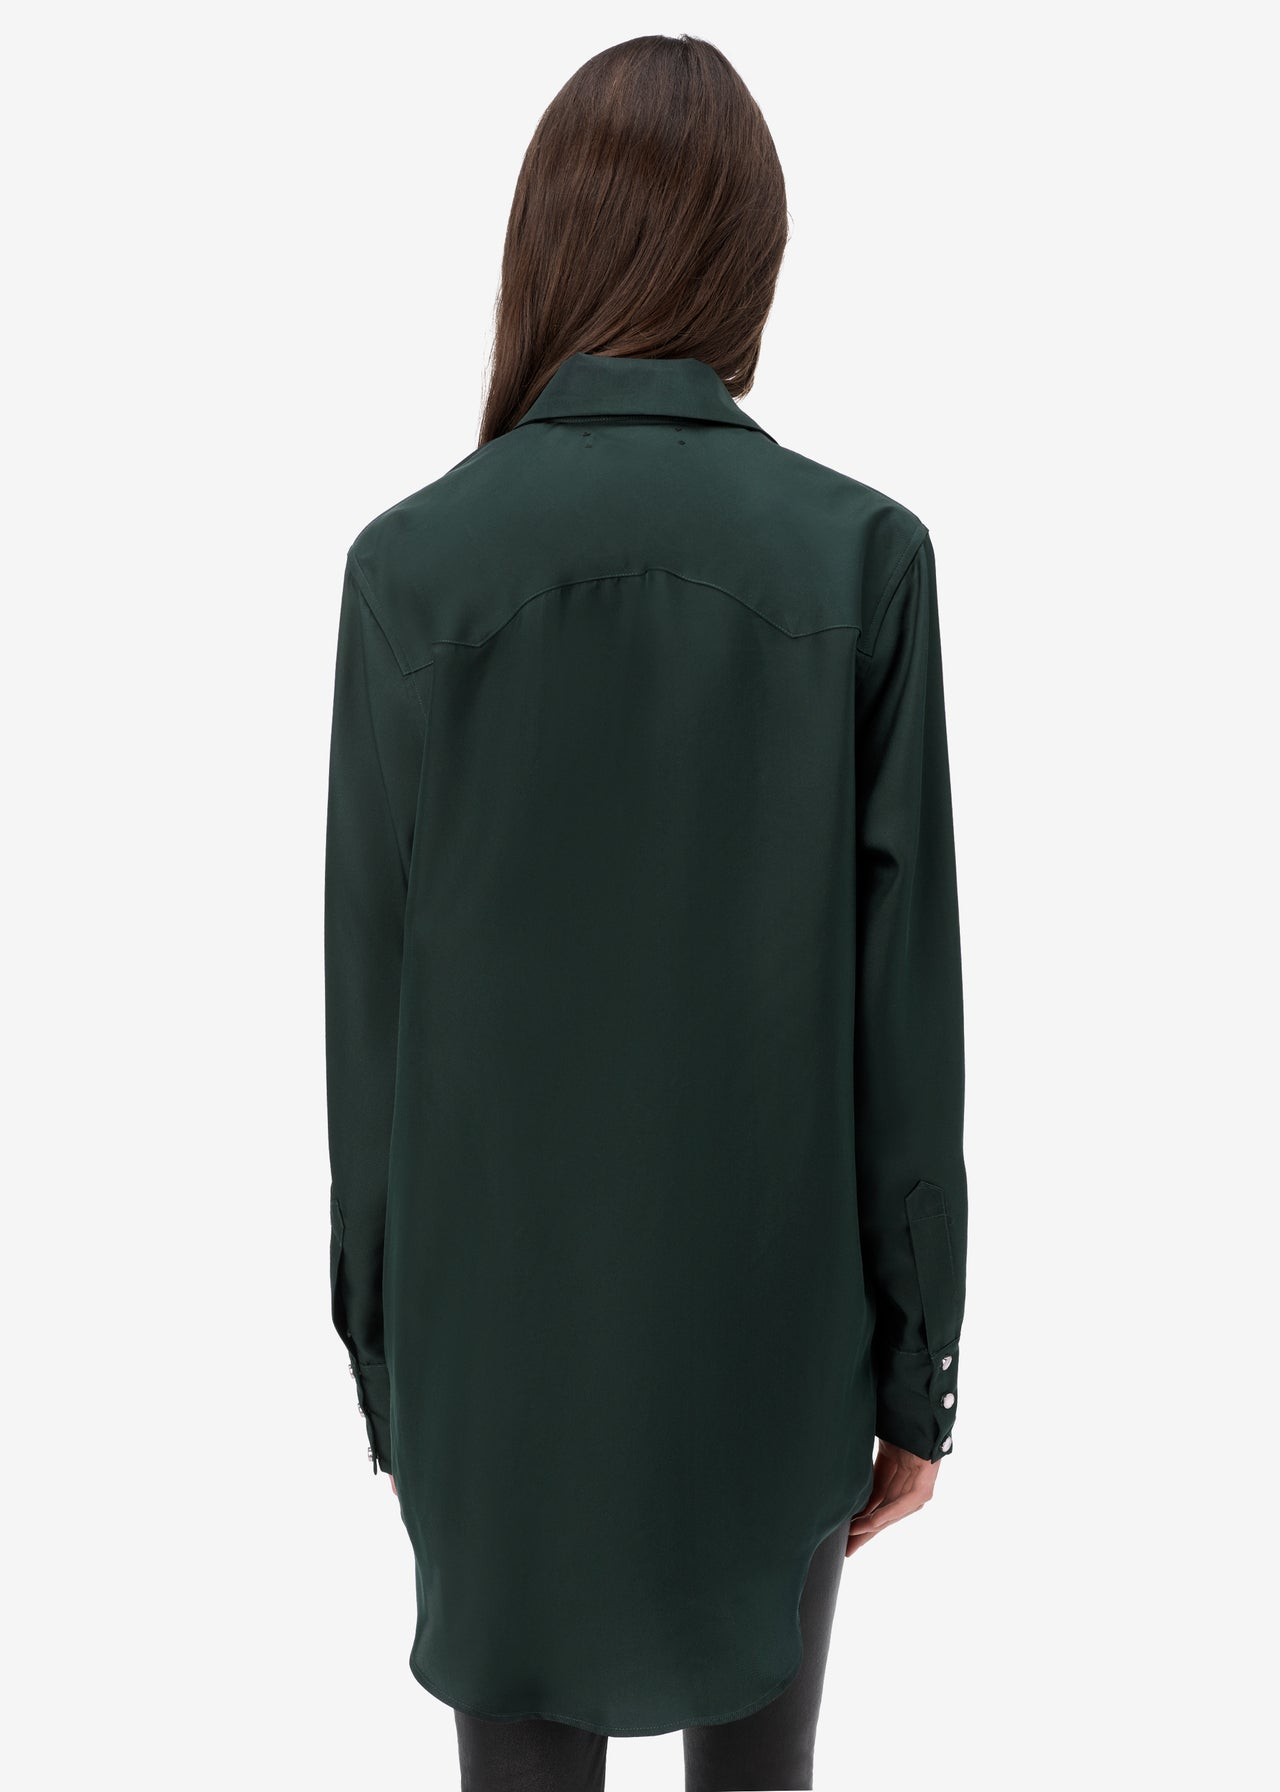 WESTERN SILK SHIRT - MILITARY GREEN